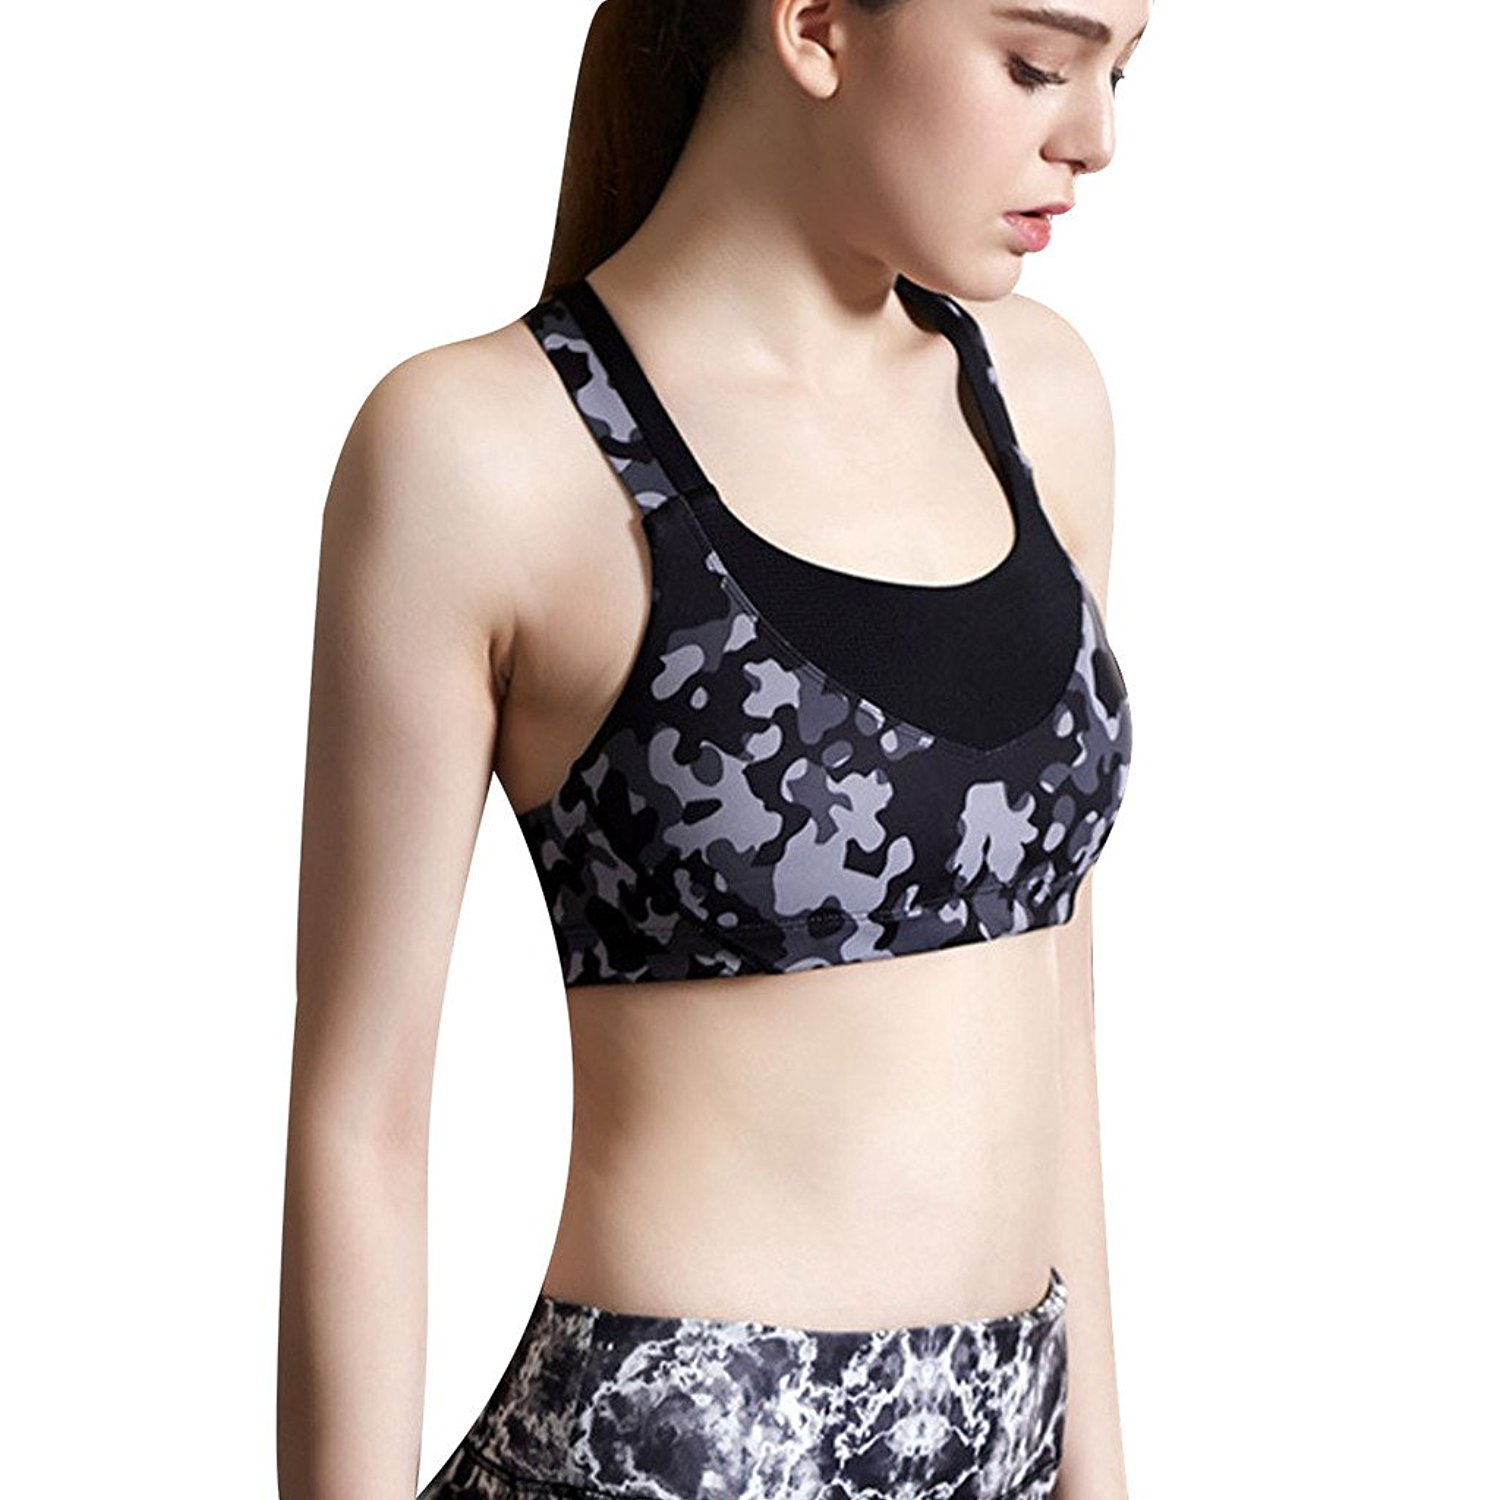 3db828a92e479 Get Quotations · Beepeak Women s Camo Pinted Padded Fashion Cross Back Crop  Top Yoga Sports Bra